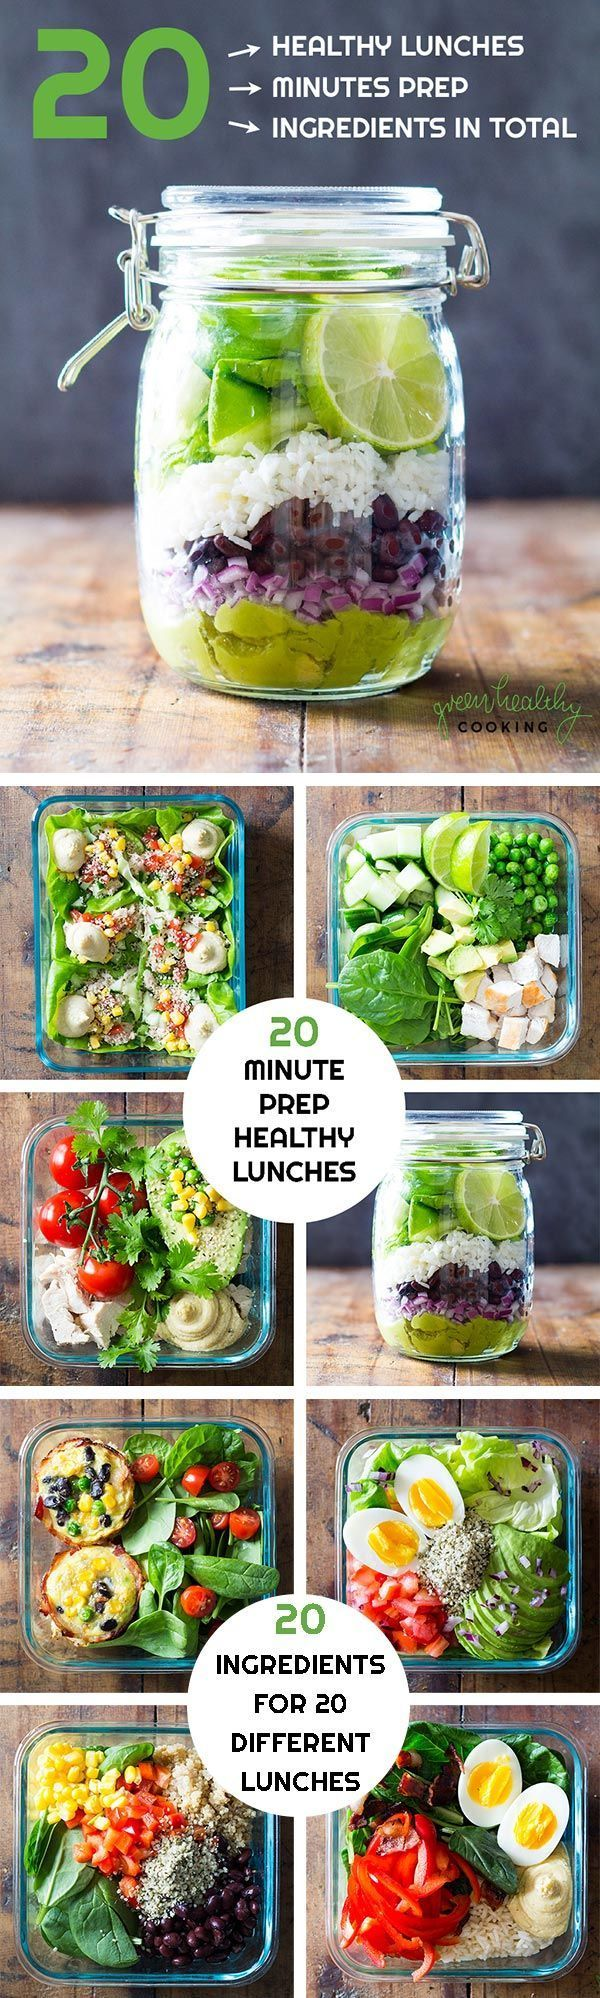 TWENTY is an e-Book offering 20 healthy lunch recipes prepared in maximum 20 minutes each and with only 20 ingredients in total for all 20 recipes. quick diet clean eating